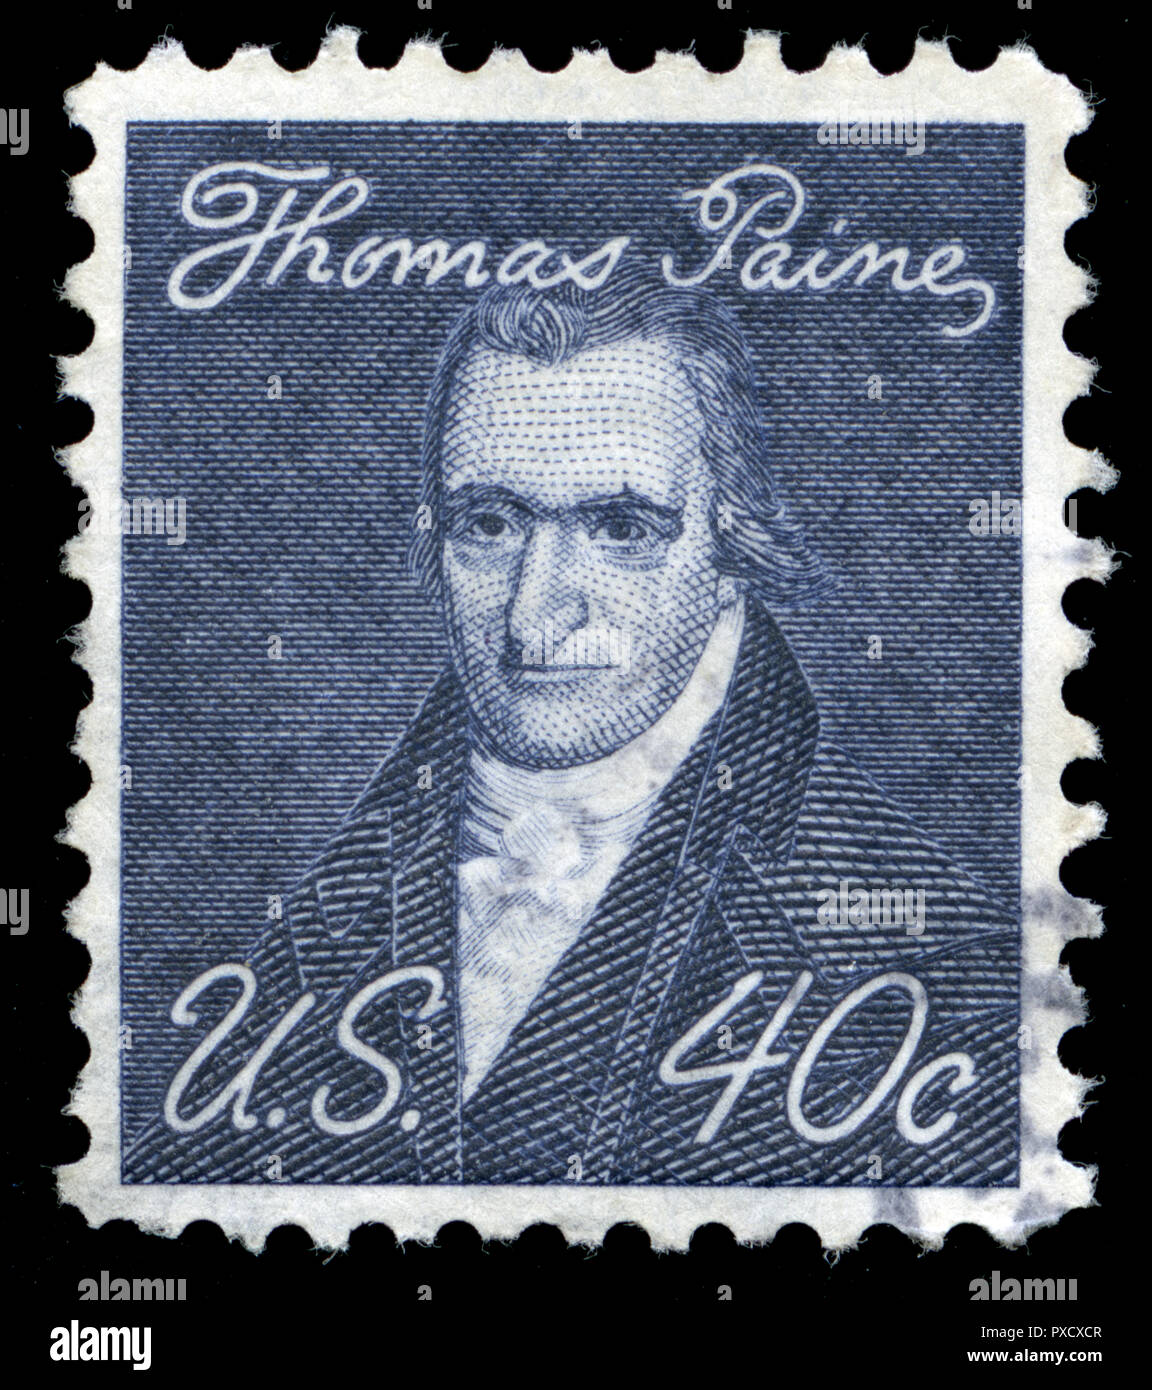 Postmarked stamp from United States of America (USA) in the Famous Americans series issued in 1973 - Stock Image